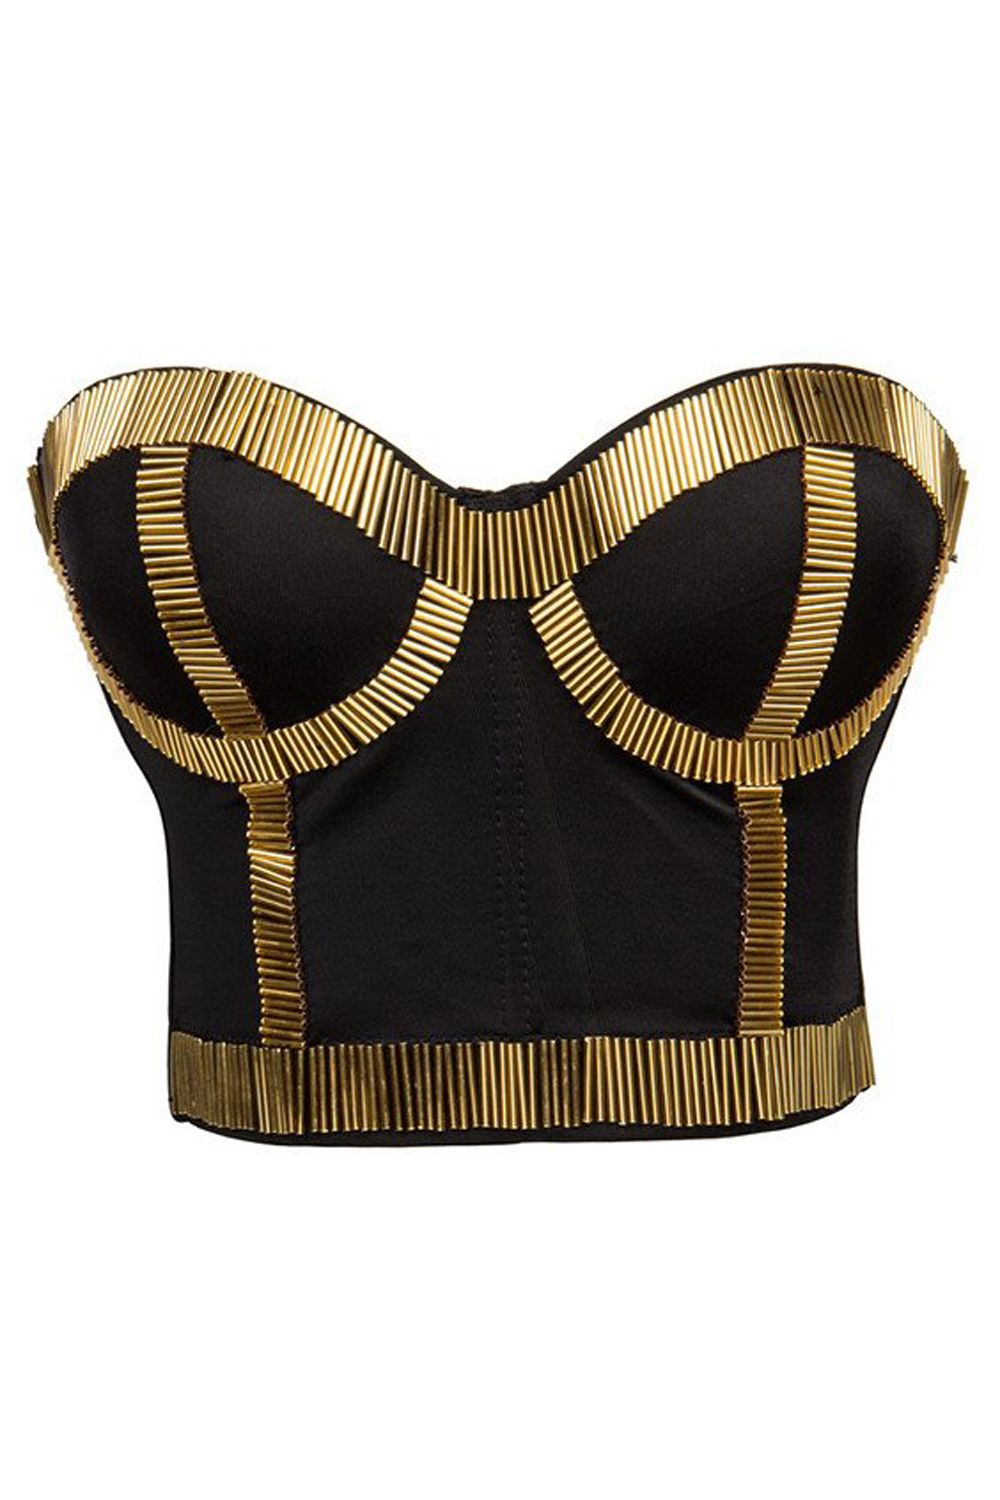 5675fa0c079 The Atomic Black and Gold Bustier Top features a black B cup underwire  bodice with beautiful gold rods symmetrical pattern over bust